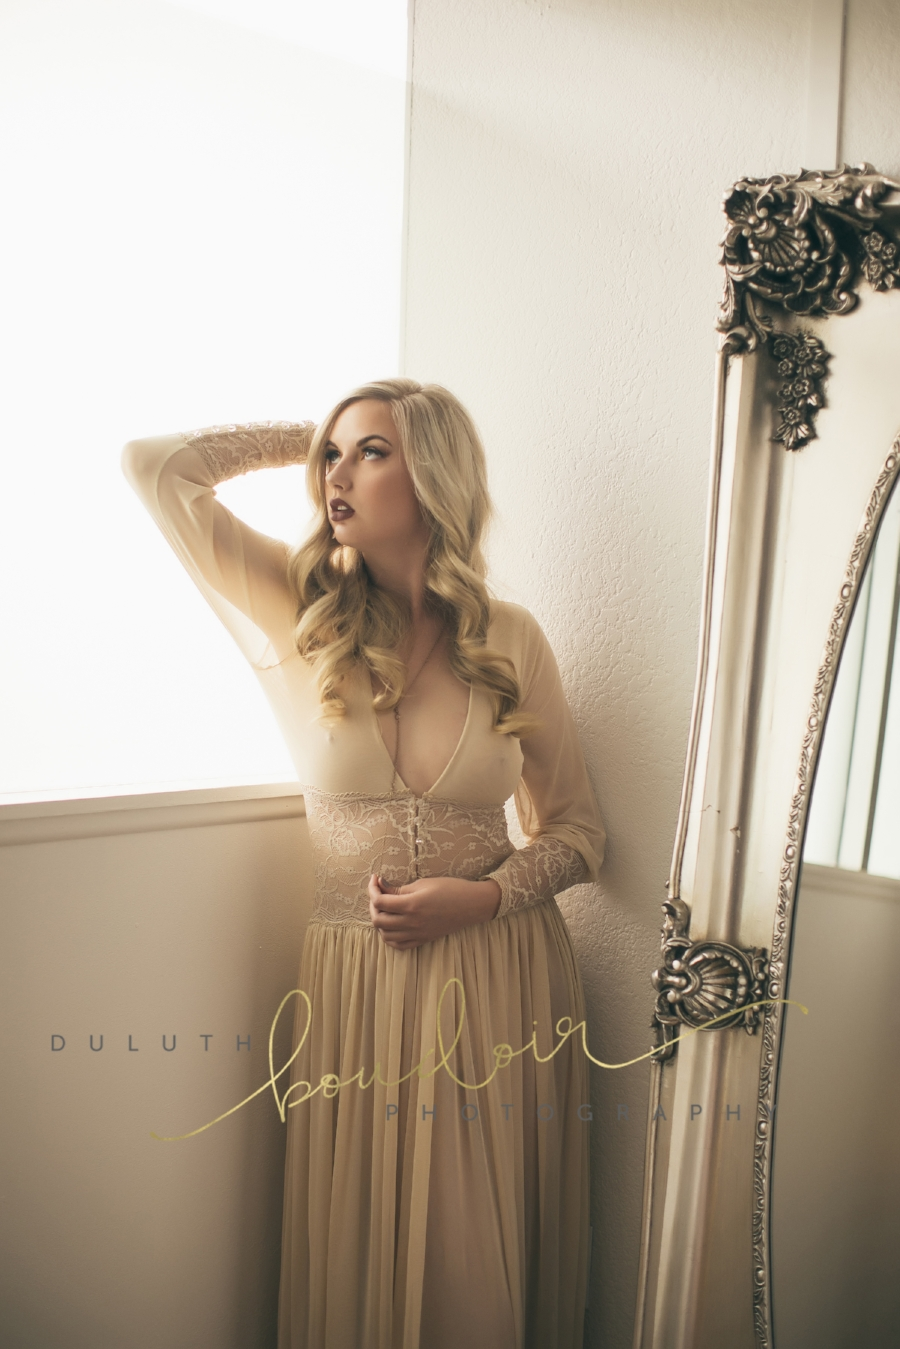 Duluth Boudoir Photography - Gown Outfit Inspiration